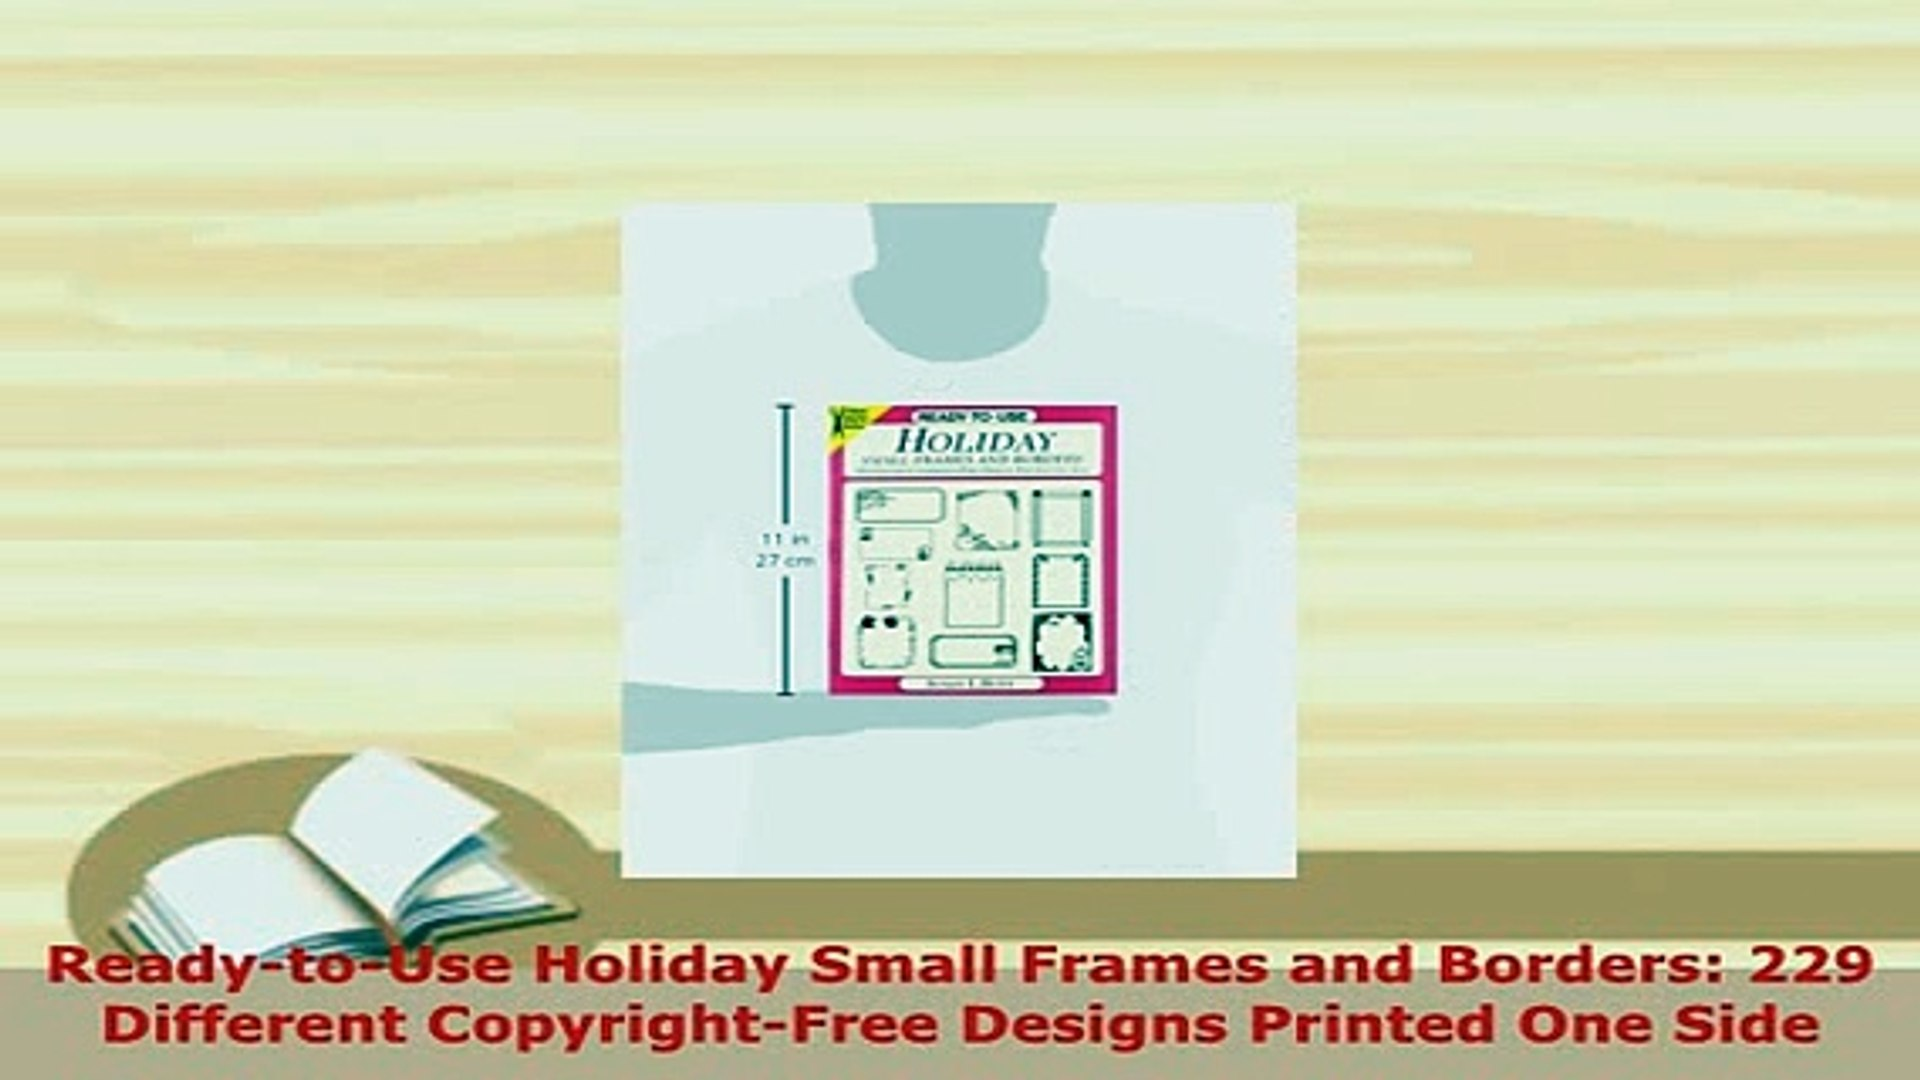 PDF  ReadytoUse Holiday Small Frames and Borders 229 Different CopyrightFree Designs PDF Online